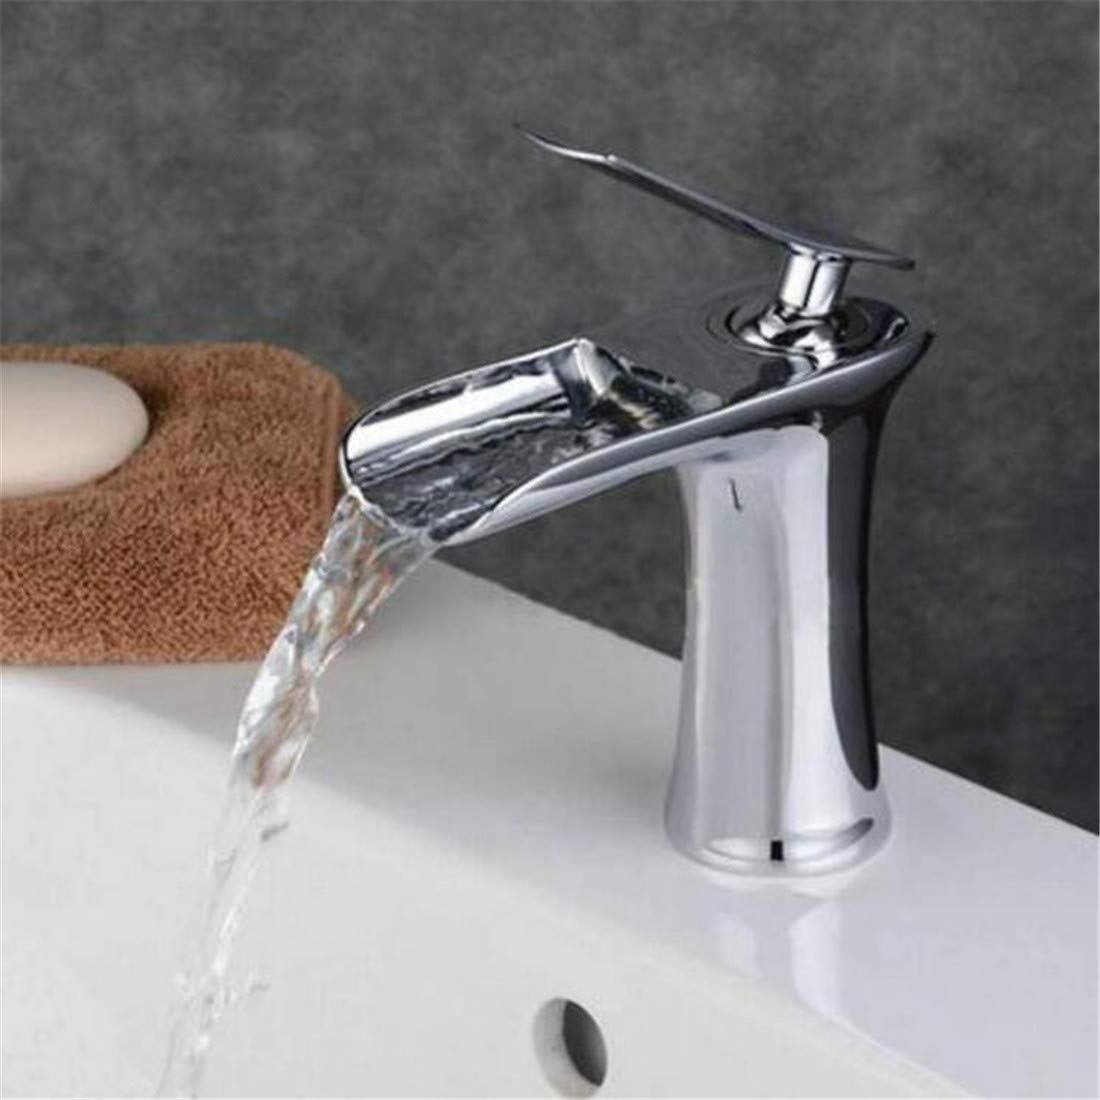 Hot and Cold Water Brass Chrome Kitchen Waterfall Bathroom Faucet Bathroom Basin Mixer Tap with Hot and Cold Water Black Brush Nickel Water Mixer